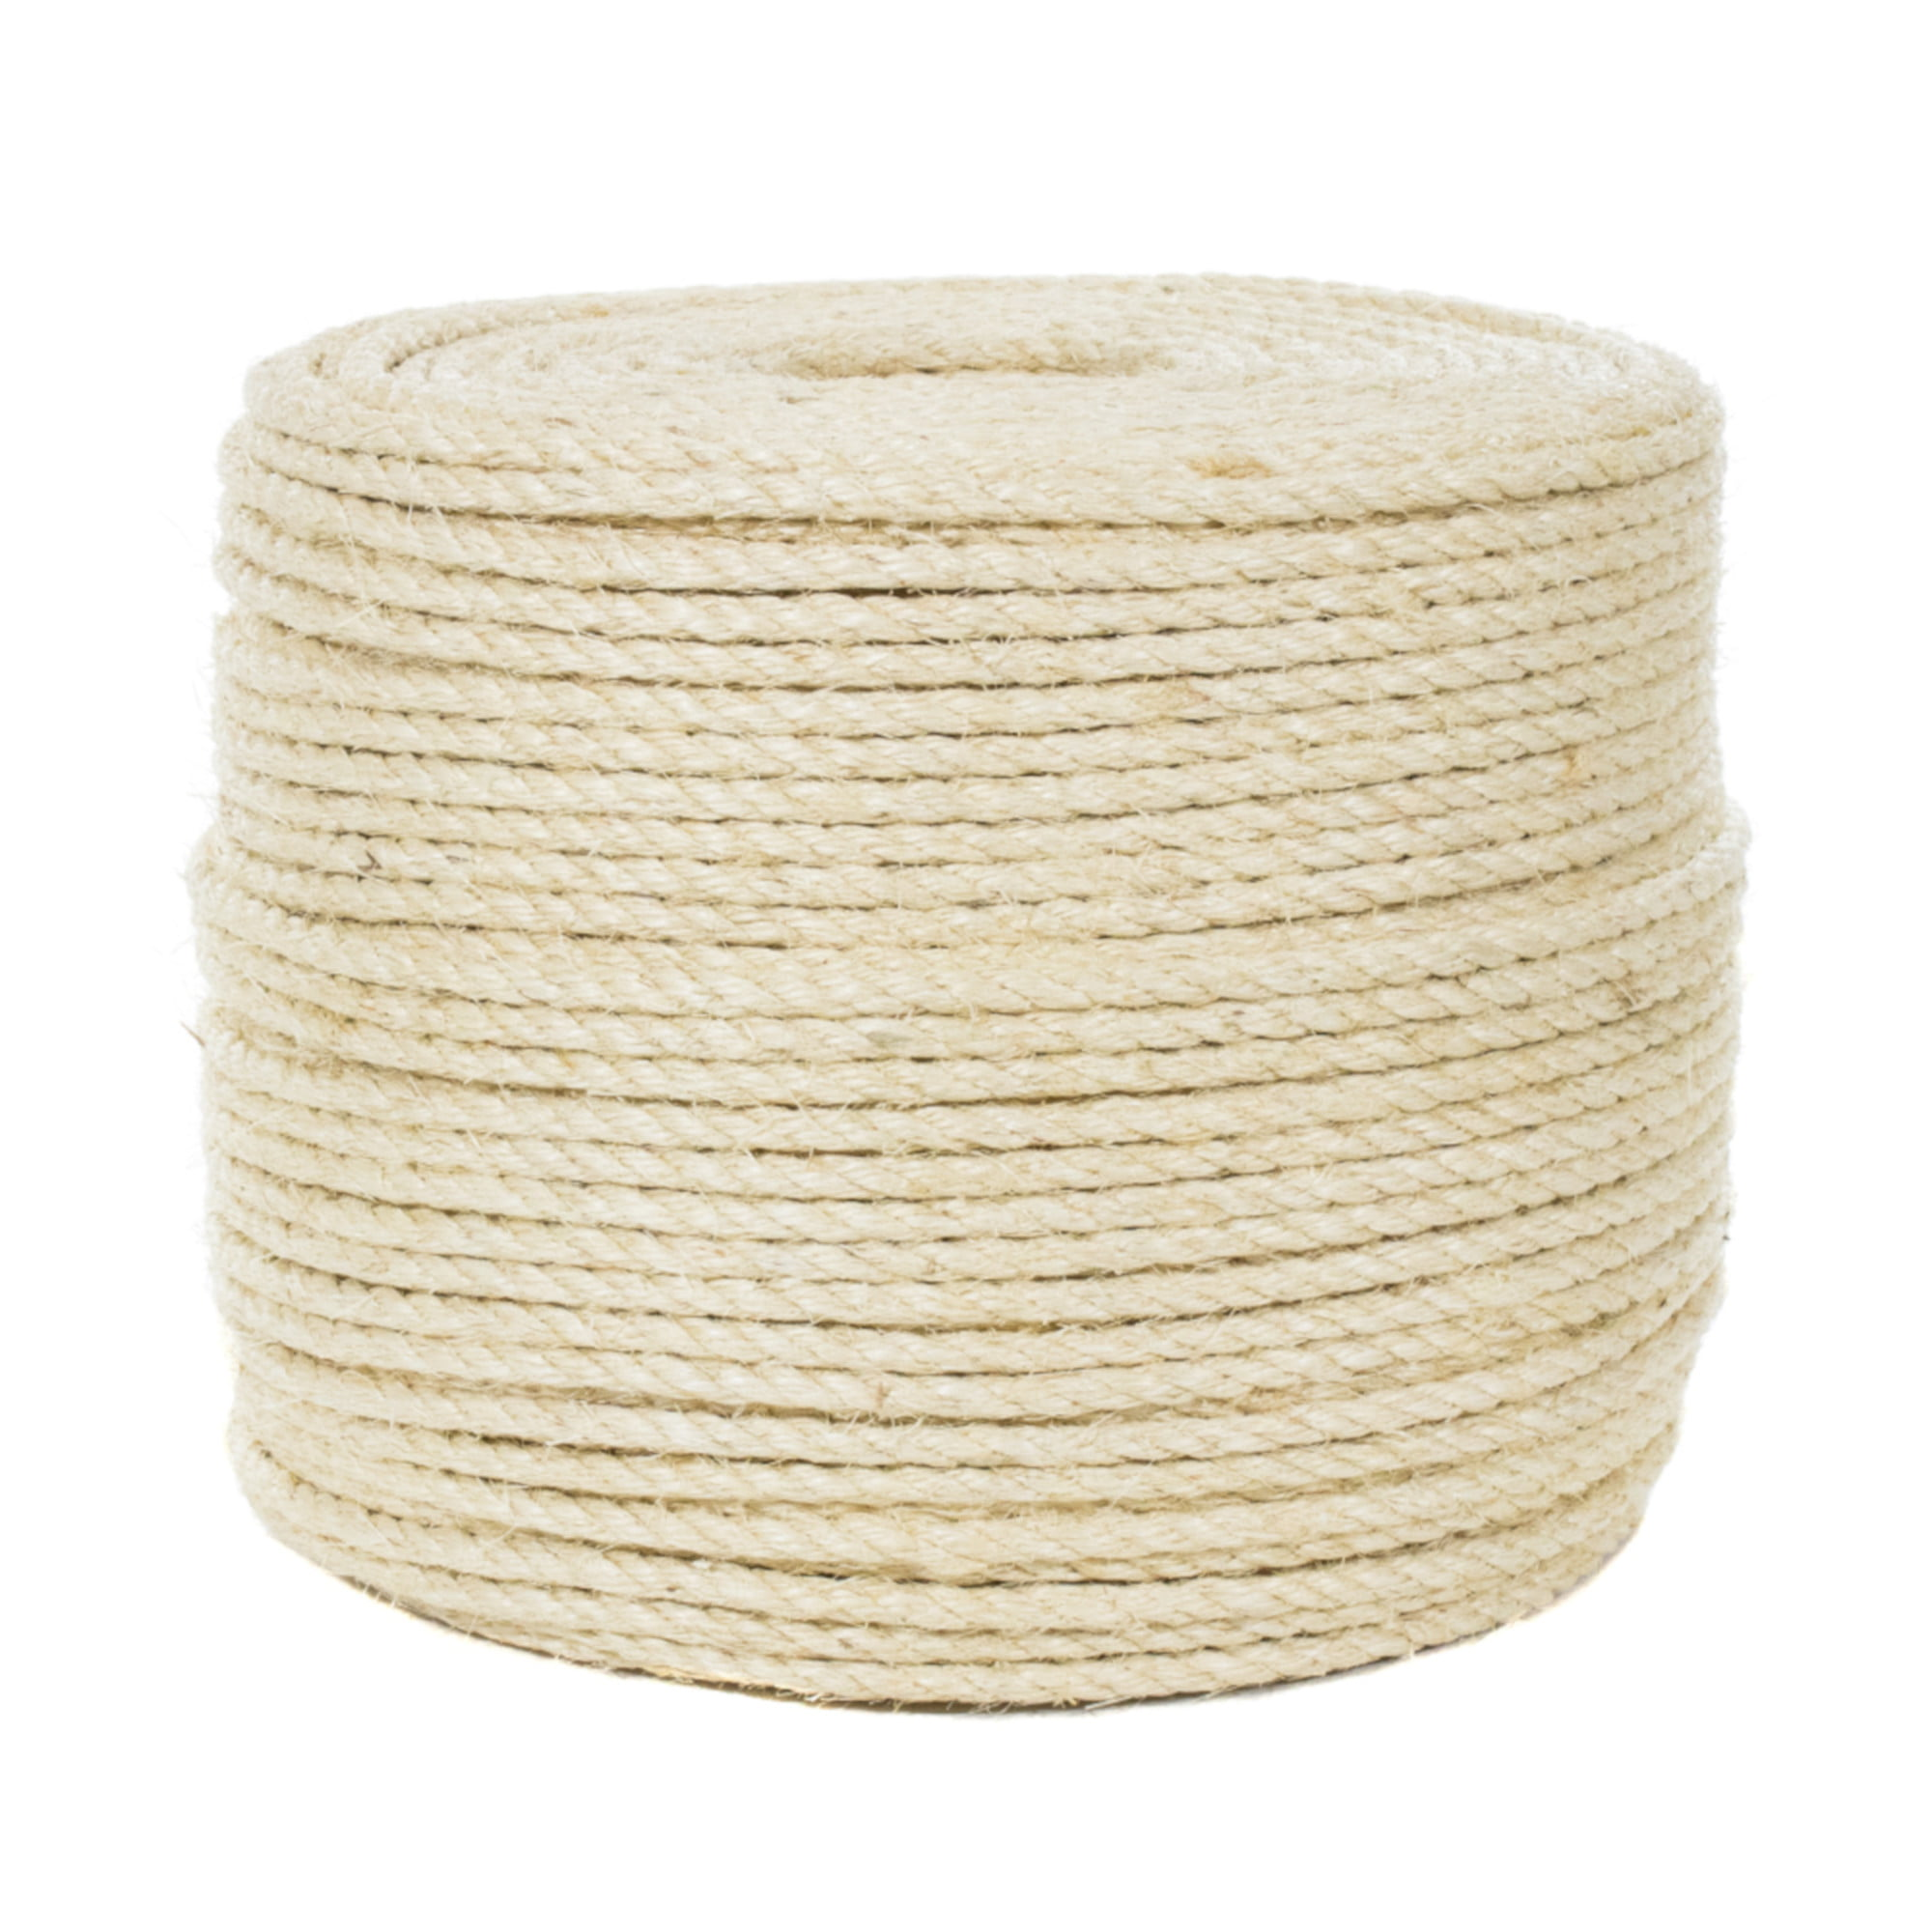 3//8 Several Lengths to Choose 3//16 7//32 1//4 5//16 3//8 1//2 5//8 3//4 1 1 1//4 GOLBERG G 1//2 1 1//2 1//4 5//16 GOLBERG Twisted 100/% Natural Cotton Rope 5//32 3//4 White Cotton Rope 3//16 5//8 1 1//4 7//32 1